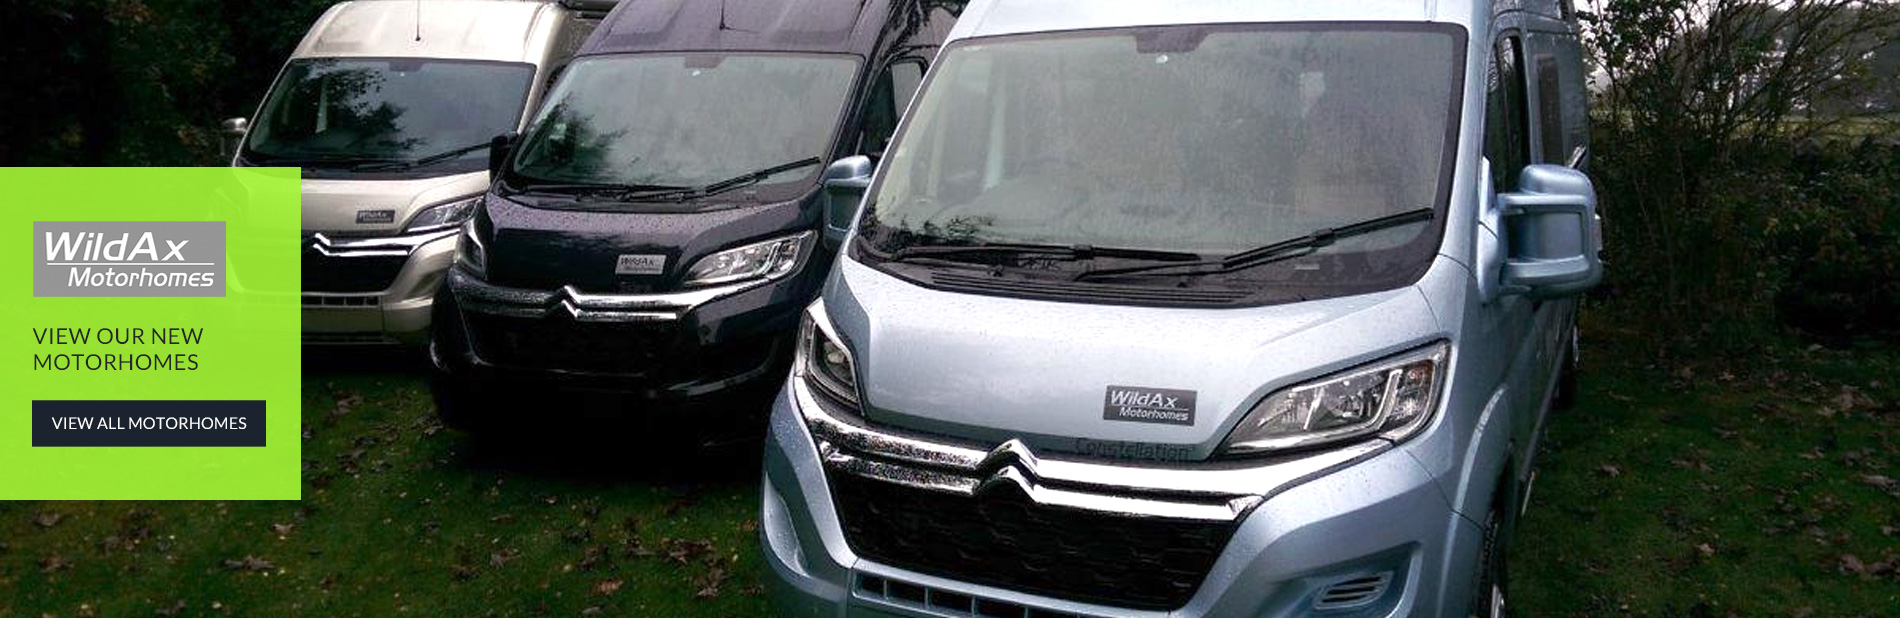 View our New Motorhomes